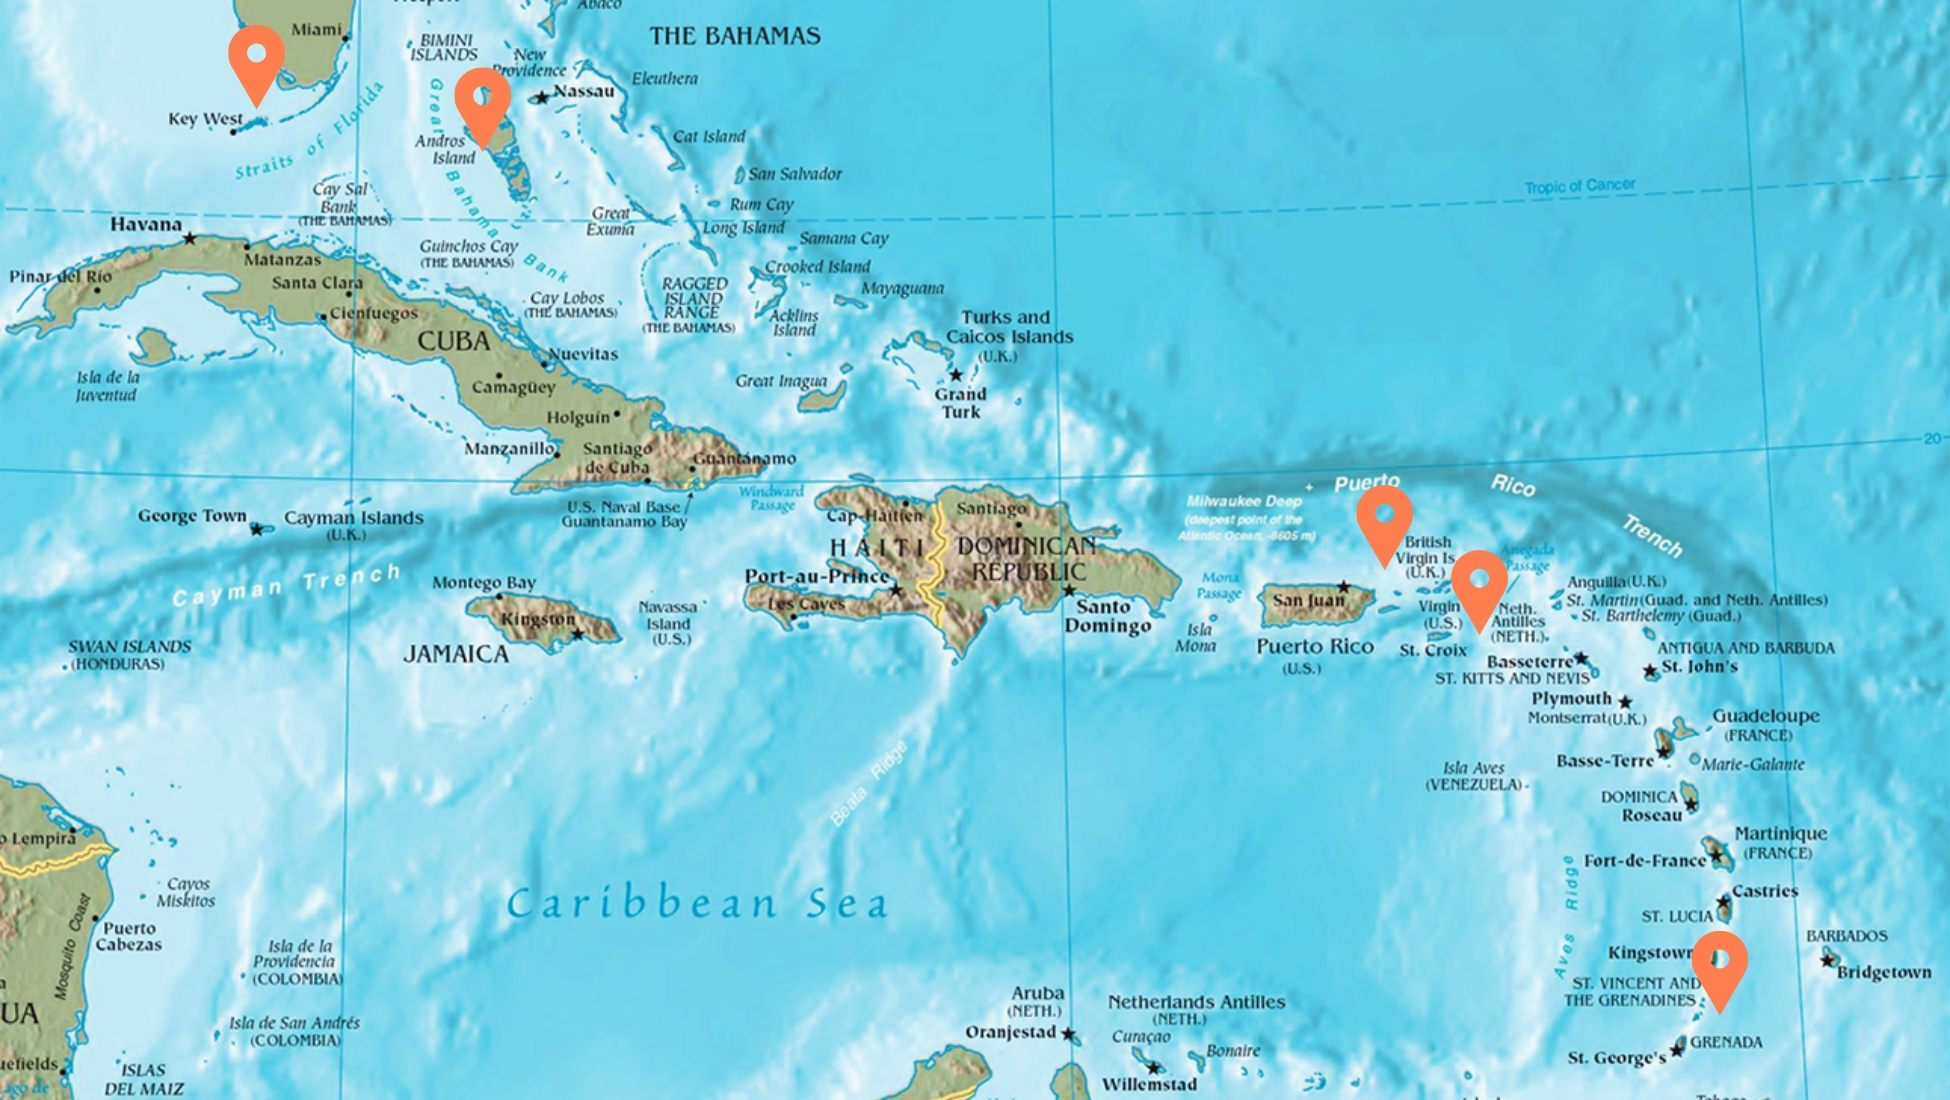 Caribbean Sea Destinations Map